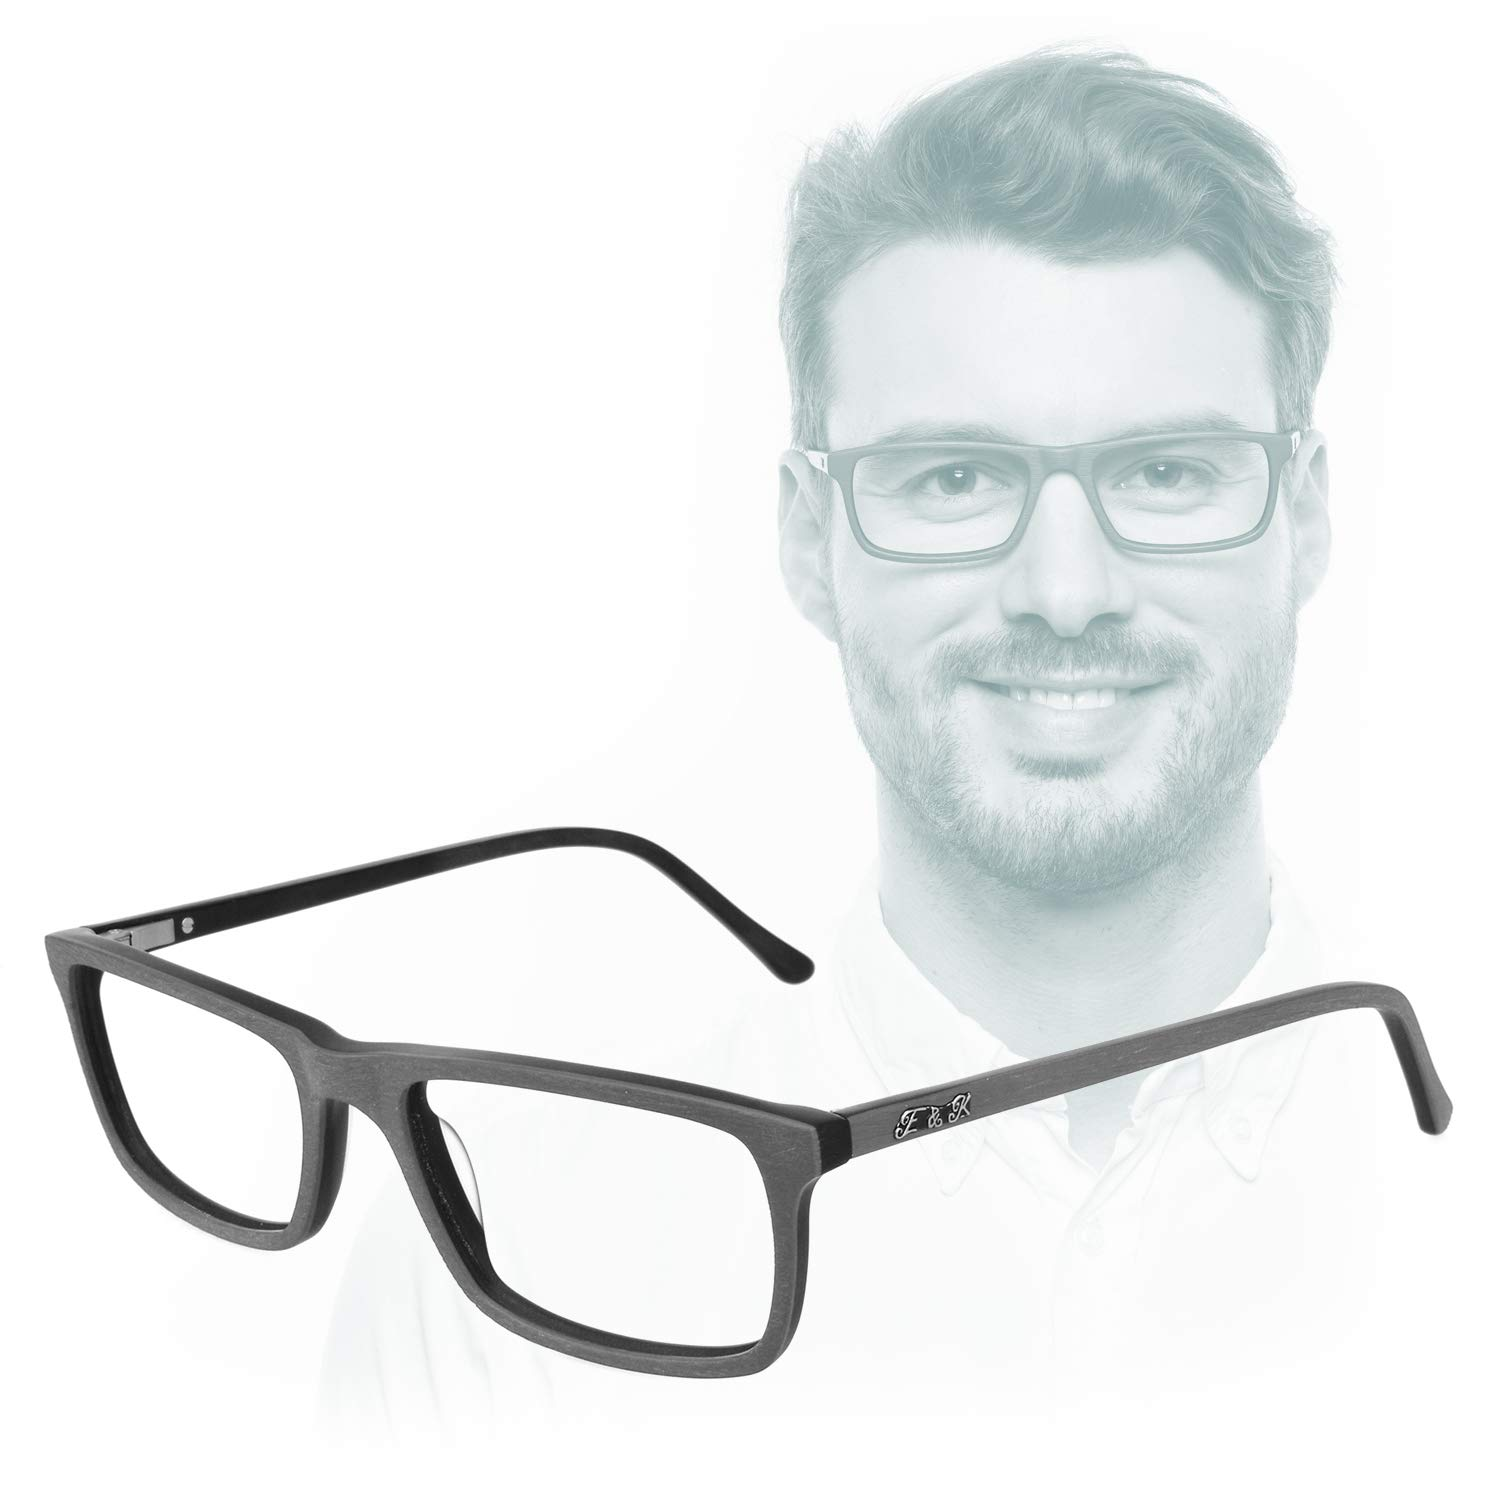 Edison & King 7th Day - The Business Reading Glasses with Premium Lenses incl. Bluelight Protect (+1.50 dpt, Grey) by Edison & King